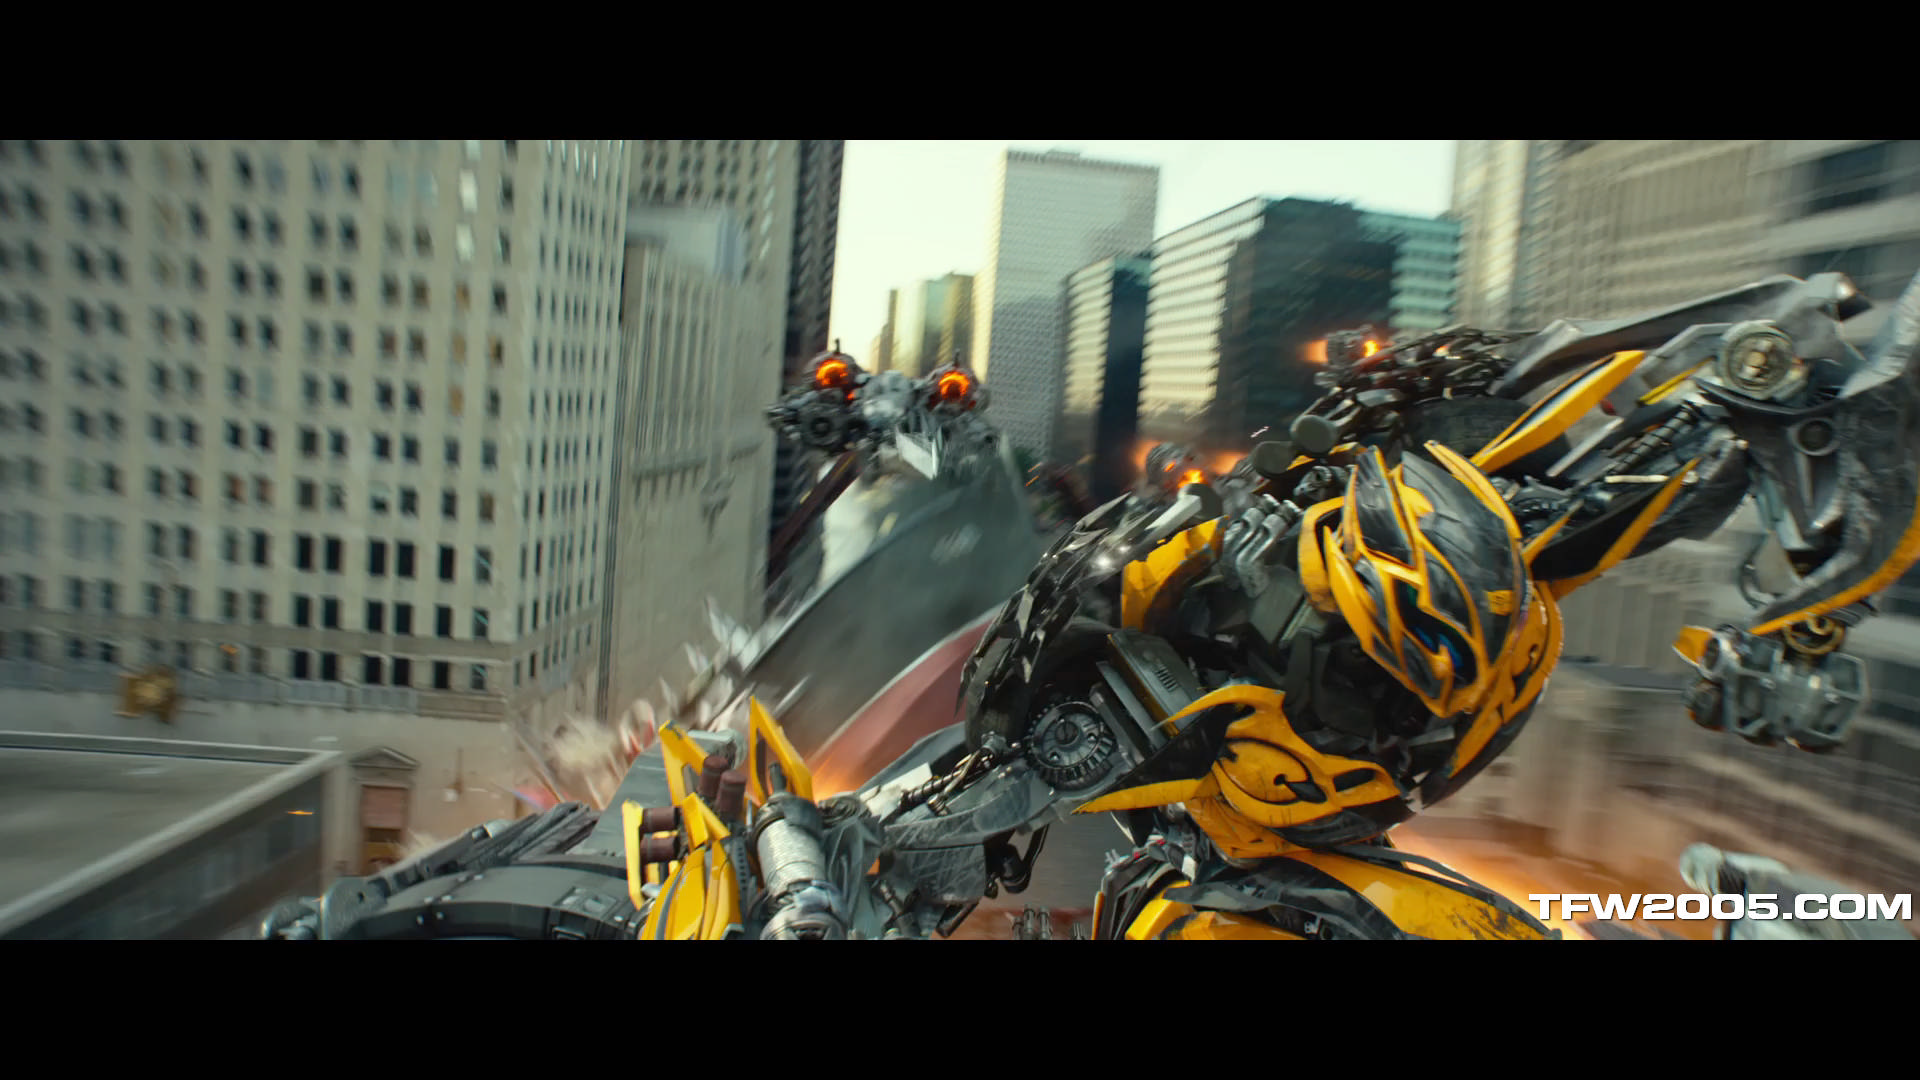 tf4-trailer-still-images-083_1393990422